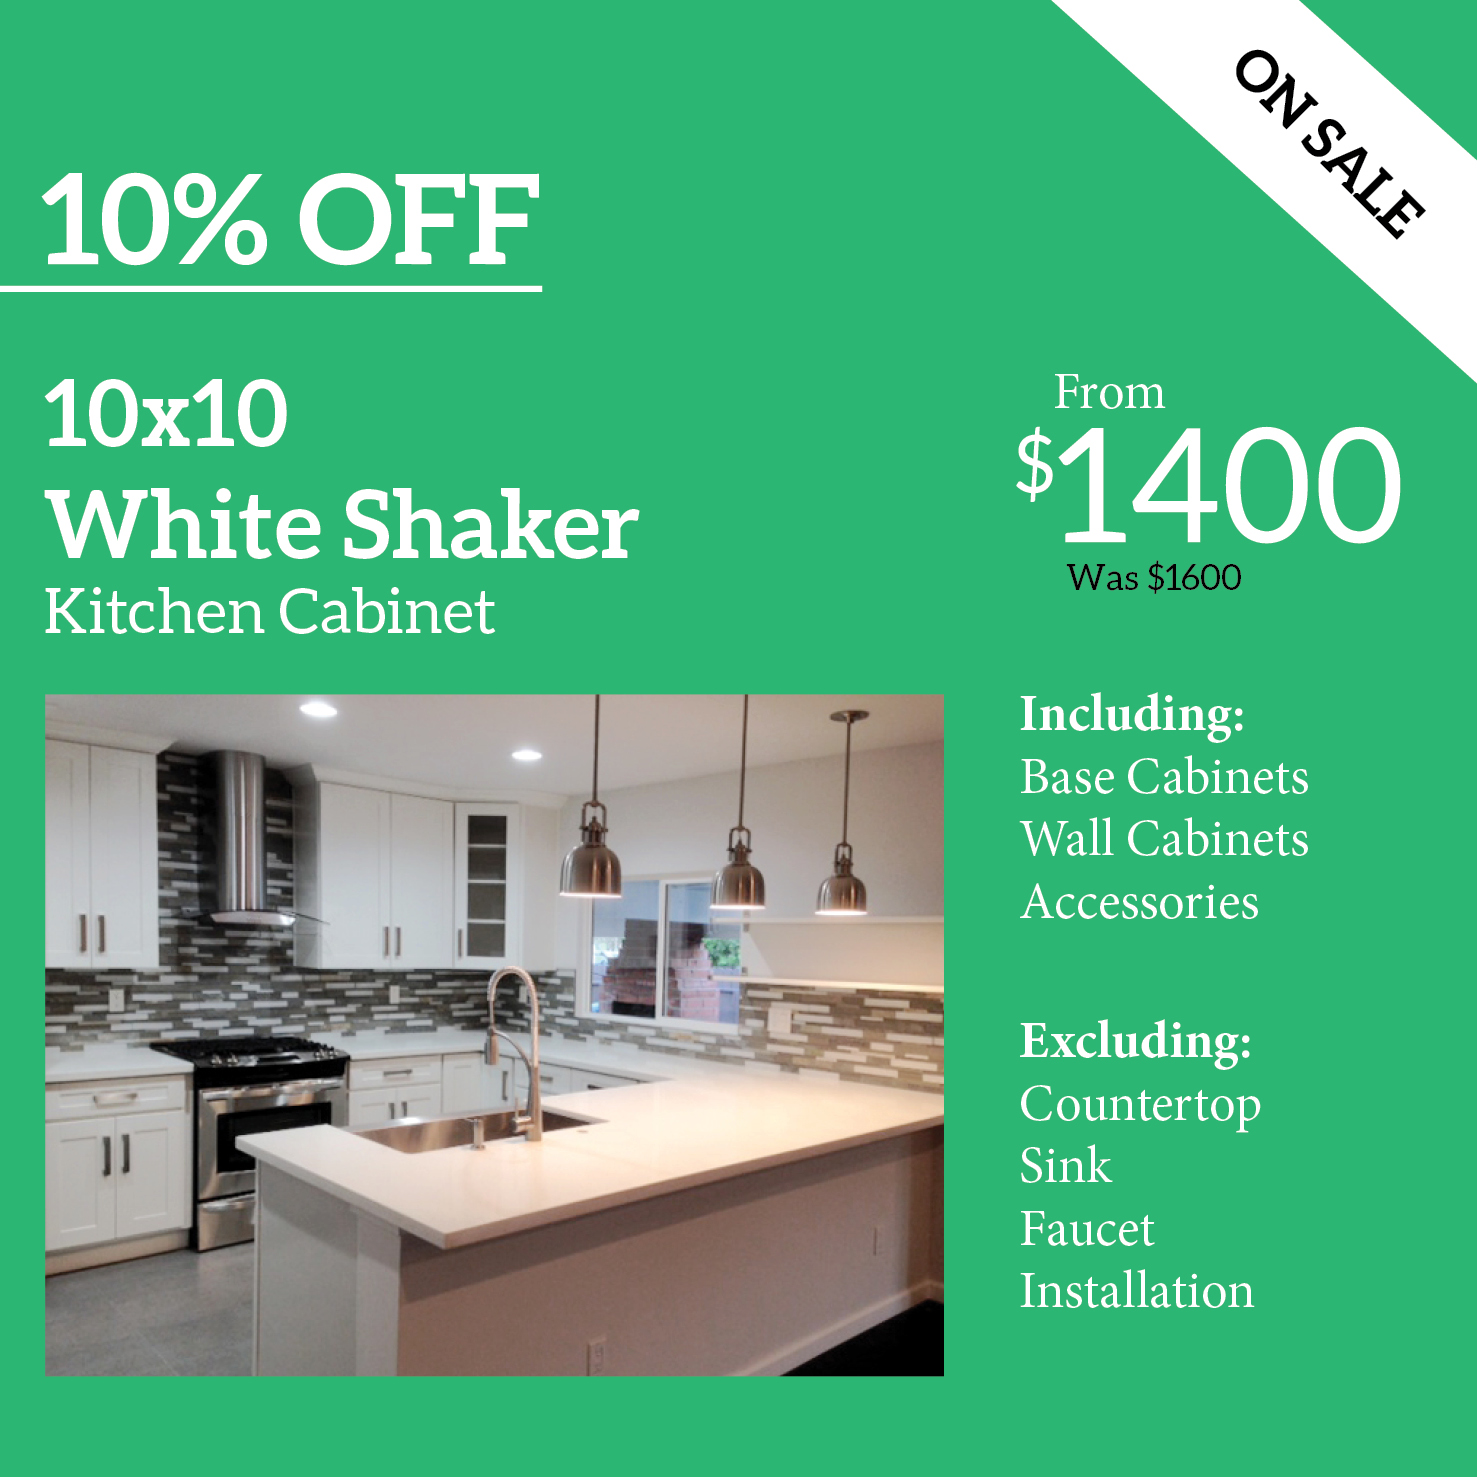 White shaker kitchen cabinet for 10x10 kitchen cabinets cheap